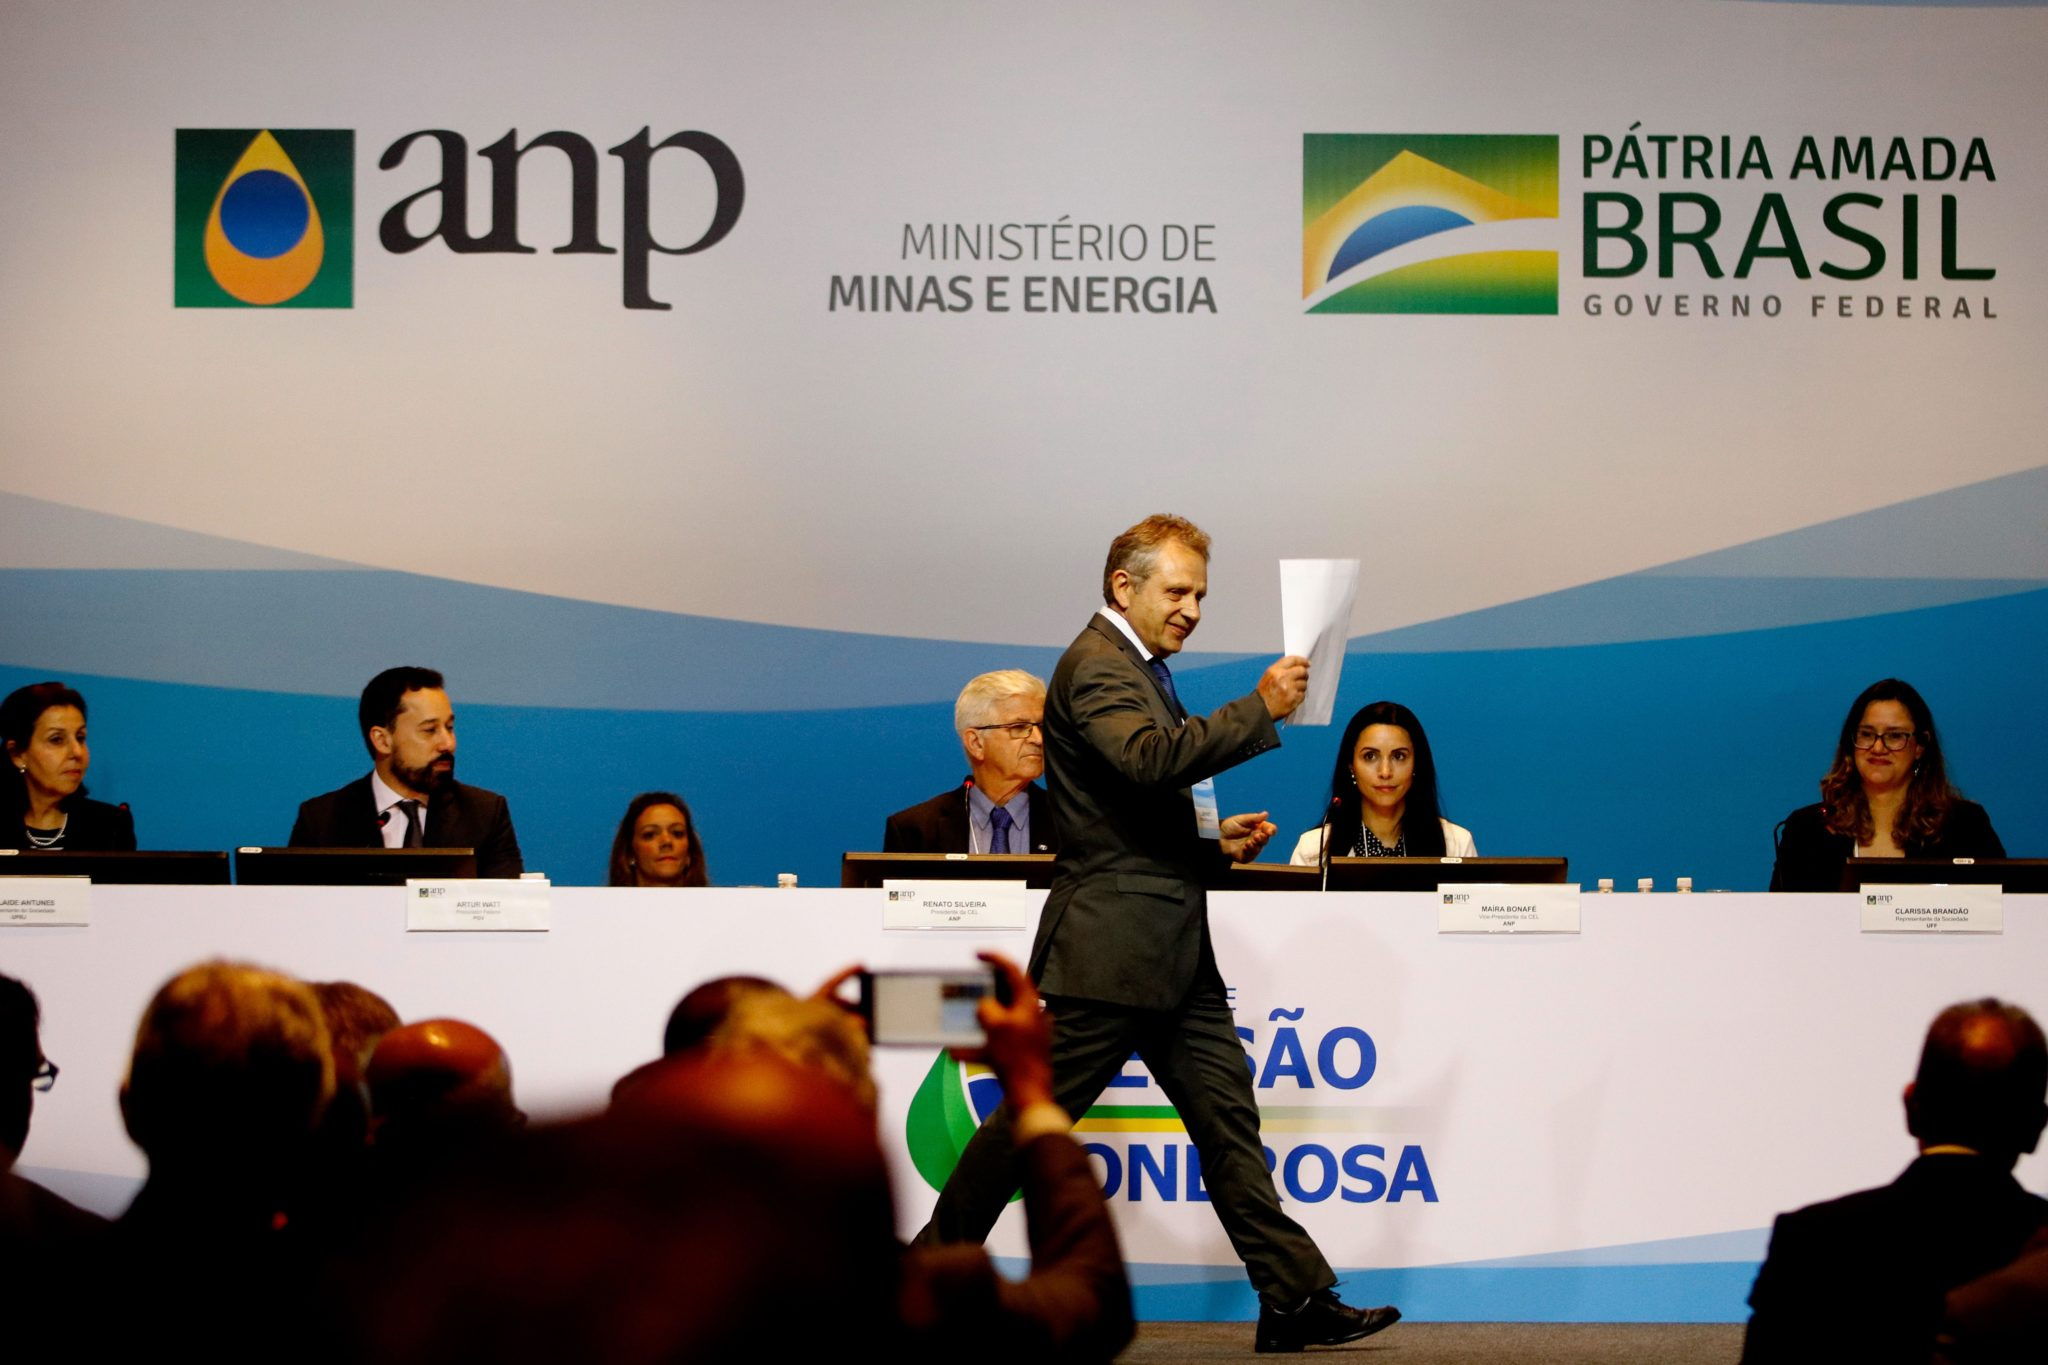 Billed in superlative terms, Brazil's tender of four pre-salt oil fields did not go as planned: foreign interest was almost zero and only two fields were sold